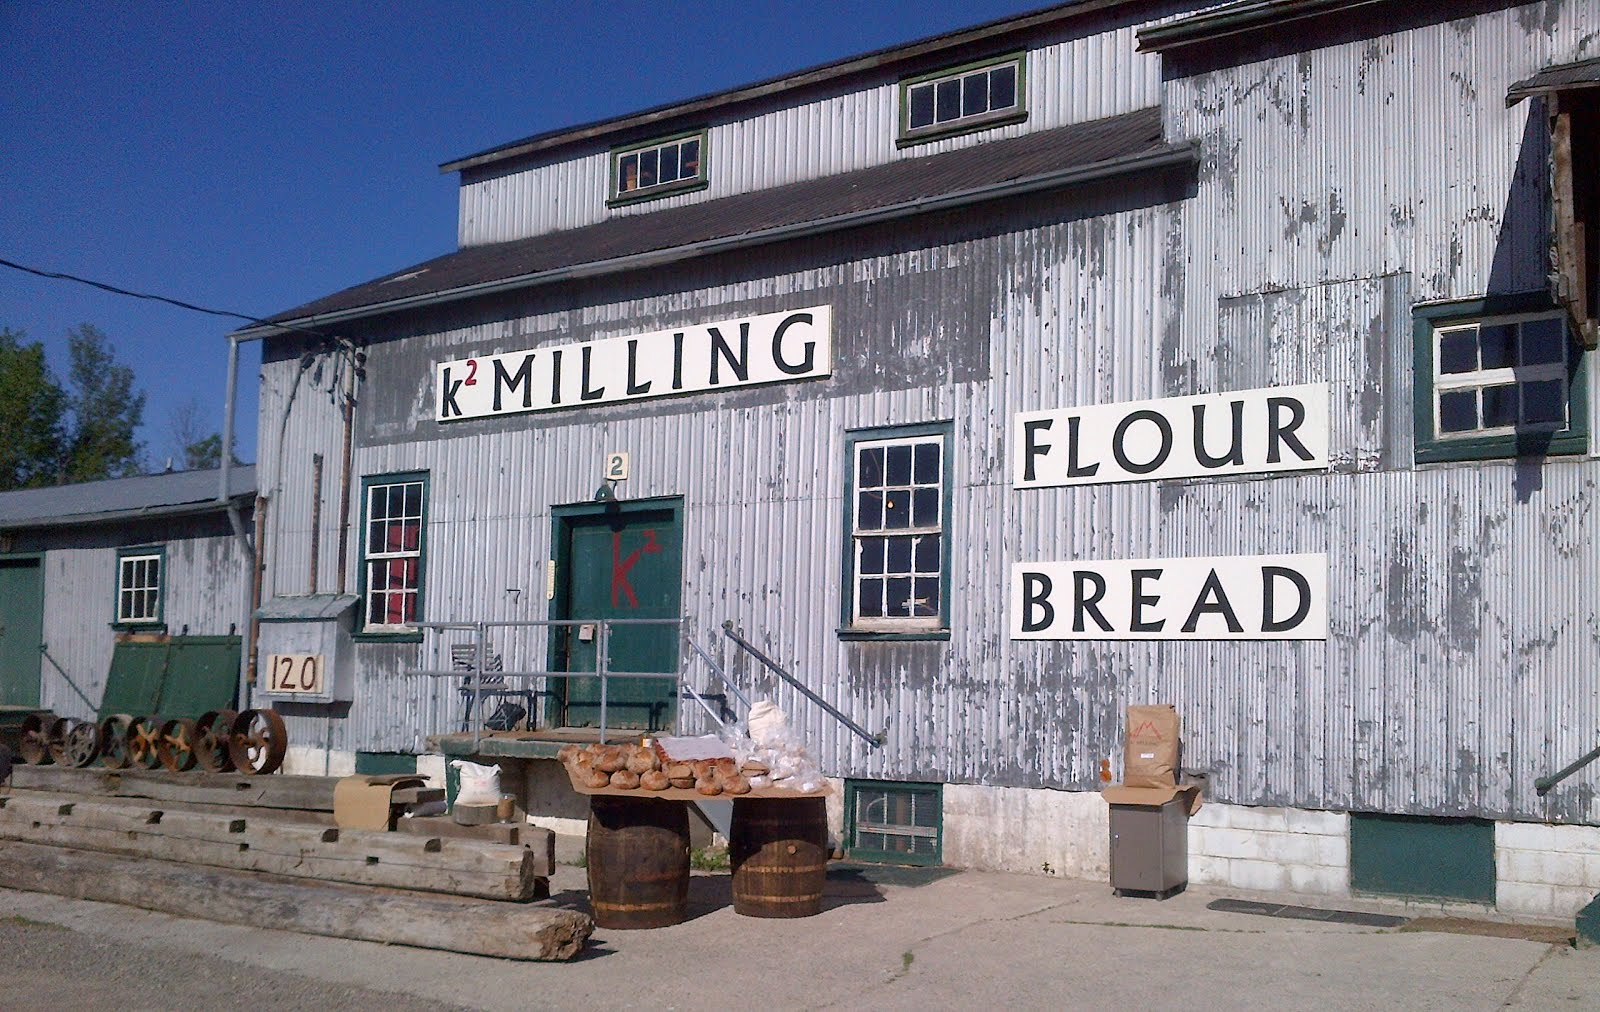 k2MILLING  -.- ..---Grinding; against the grain.  FLOUR   FLOUR  FLOUR    647 519 1194      do u k2